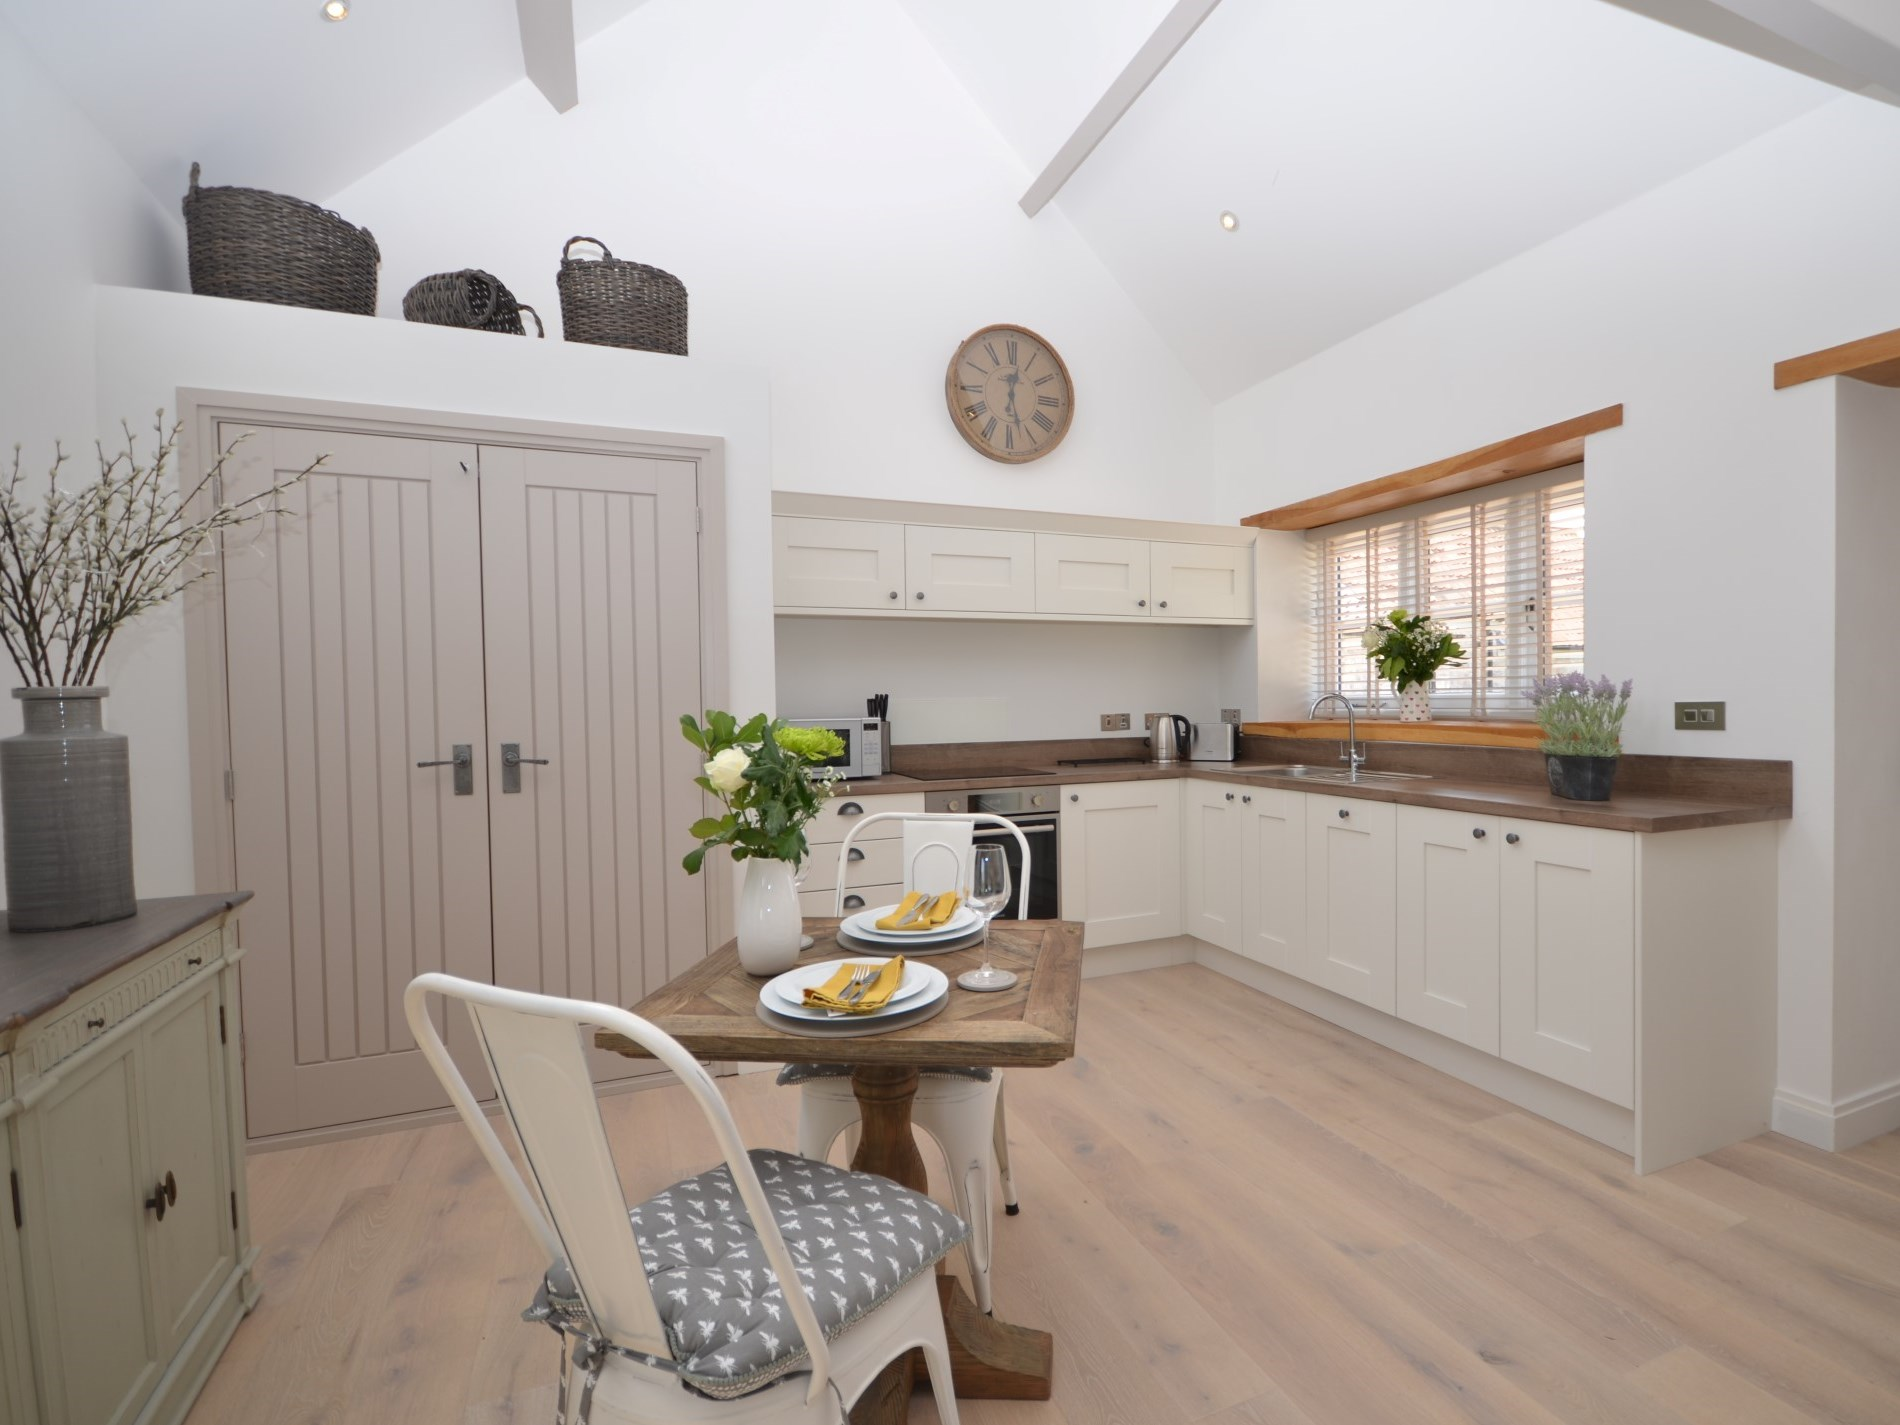 Beautifully presented kitchen